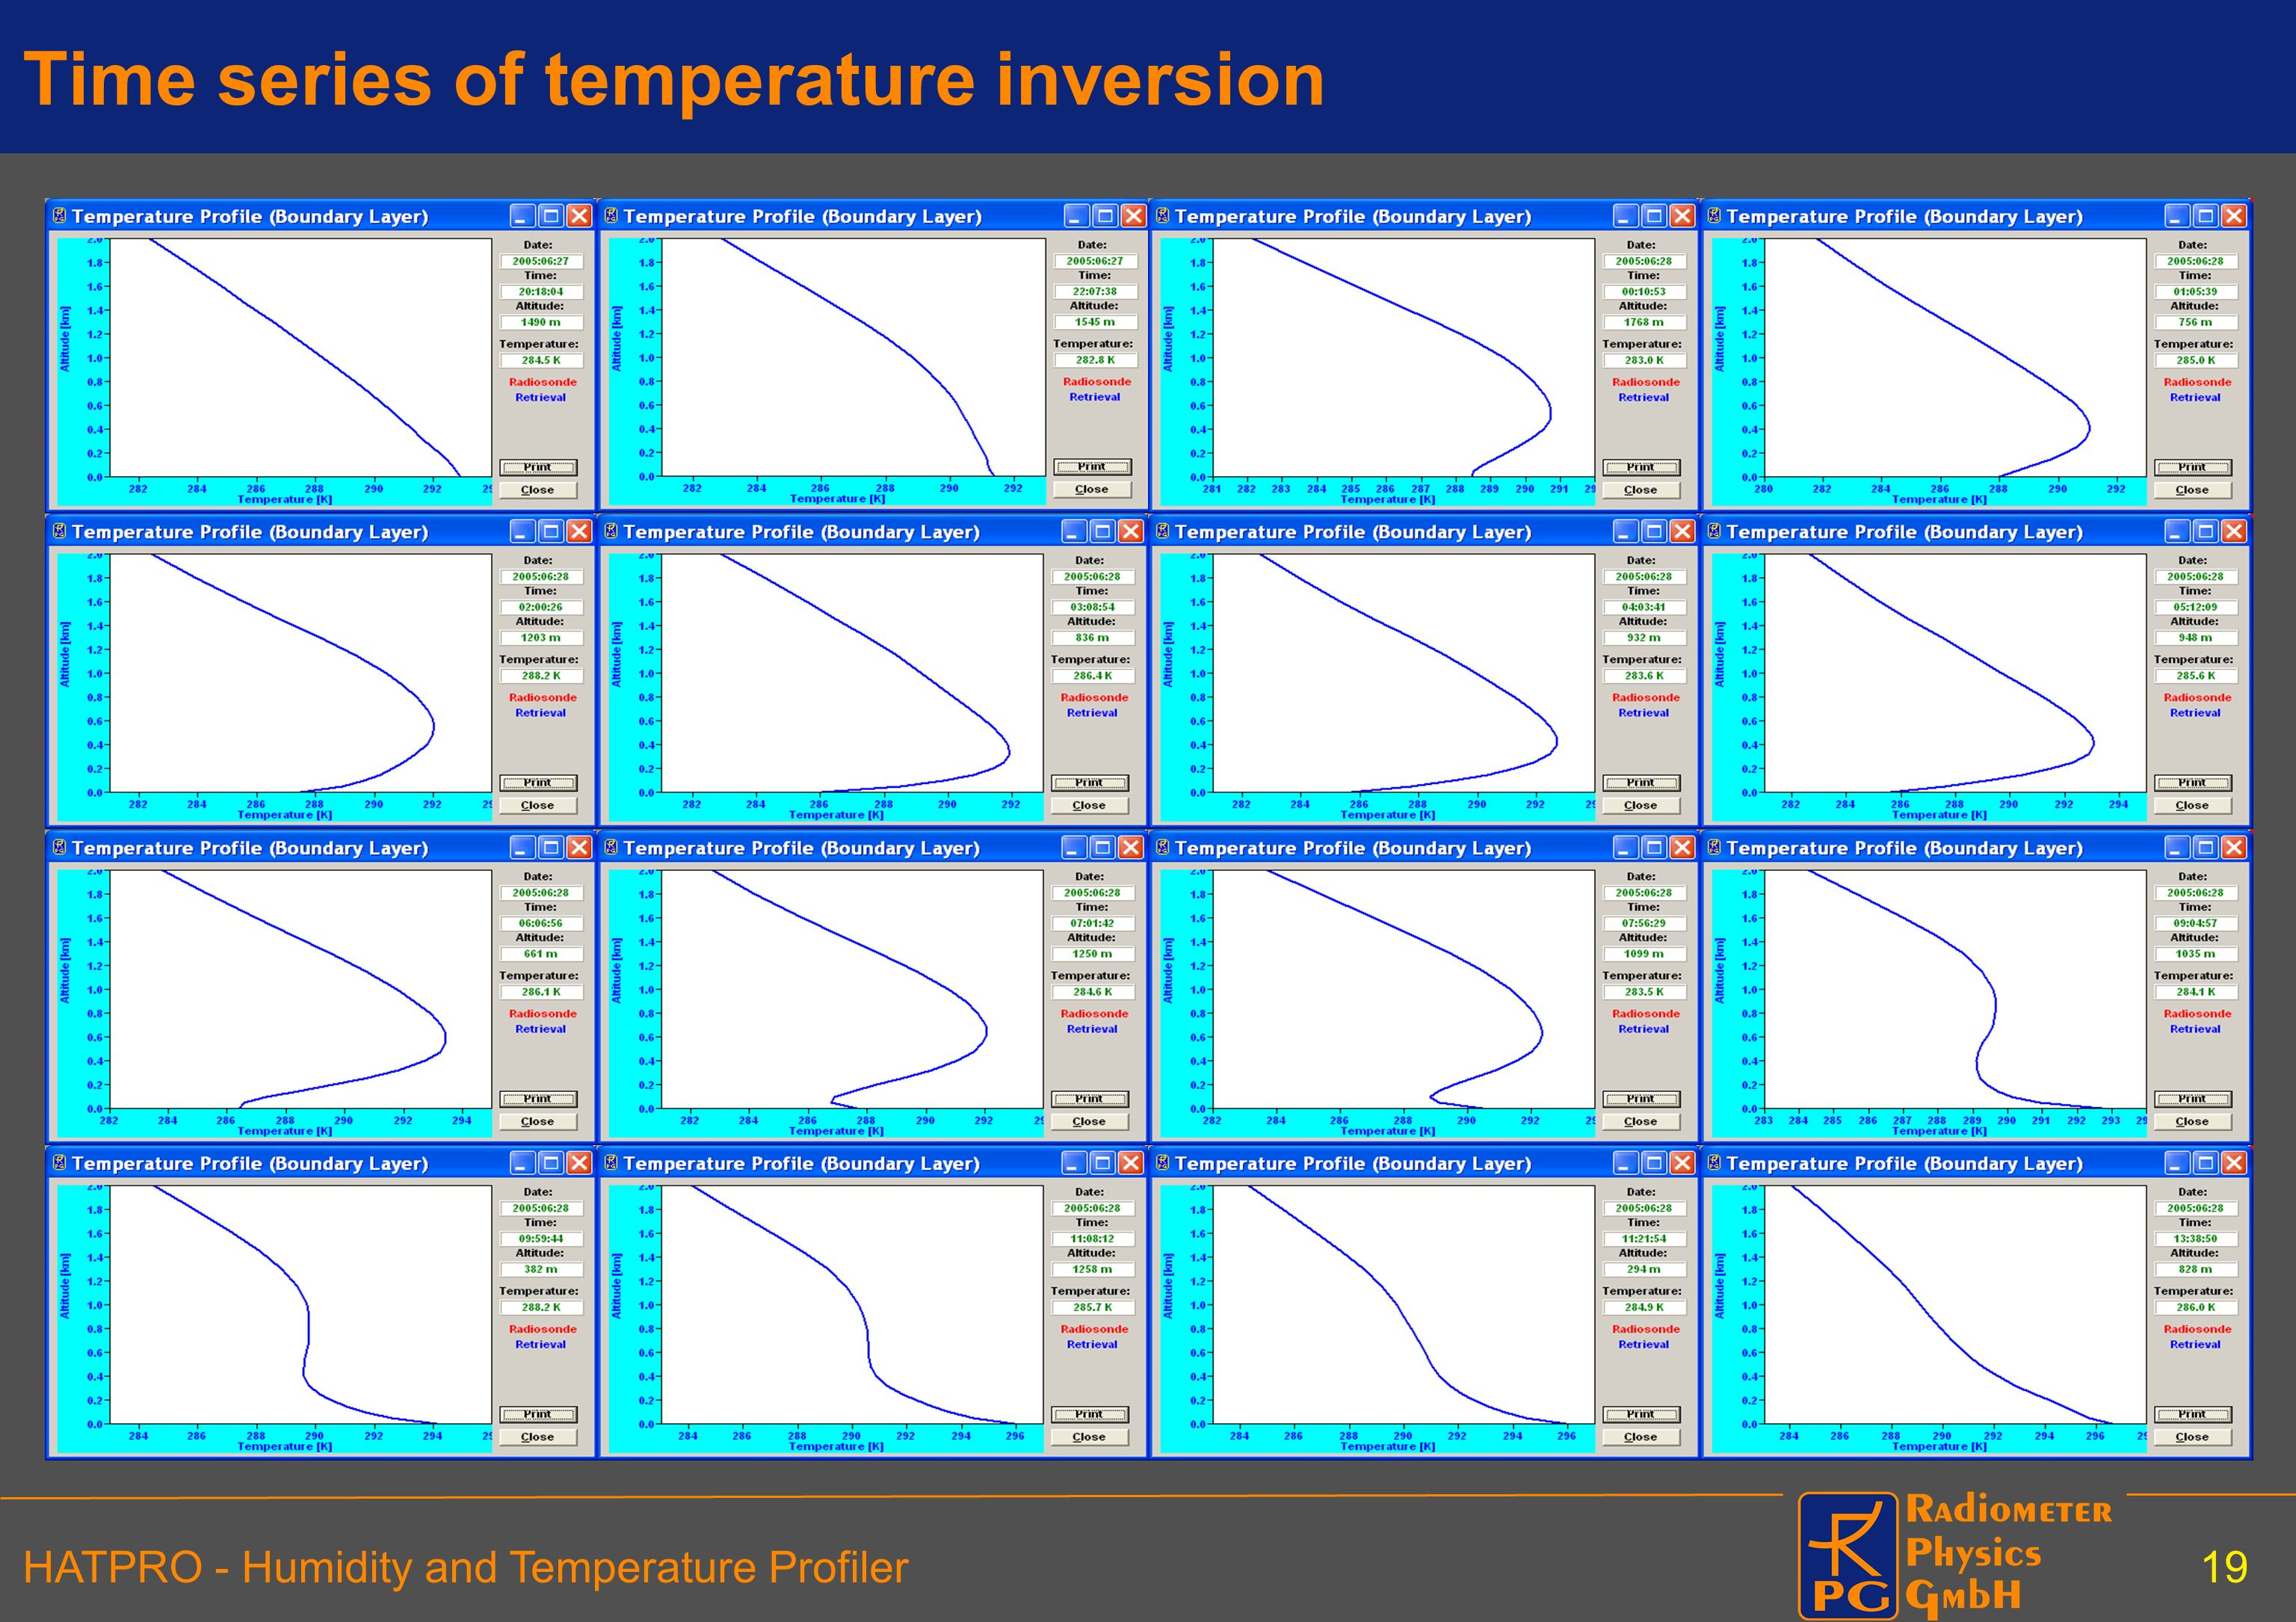 Time series of temperature inversion